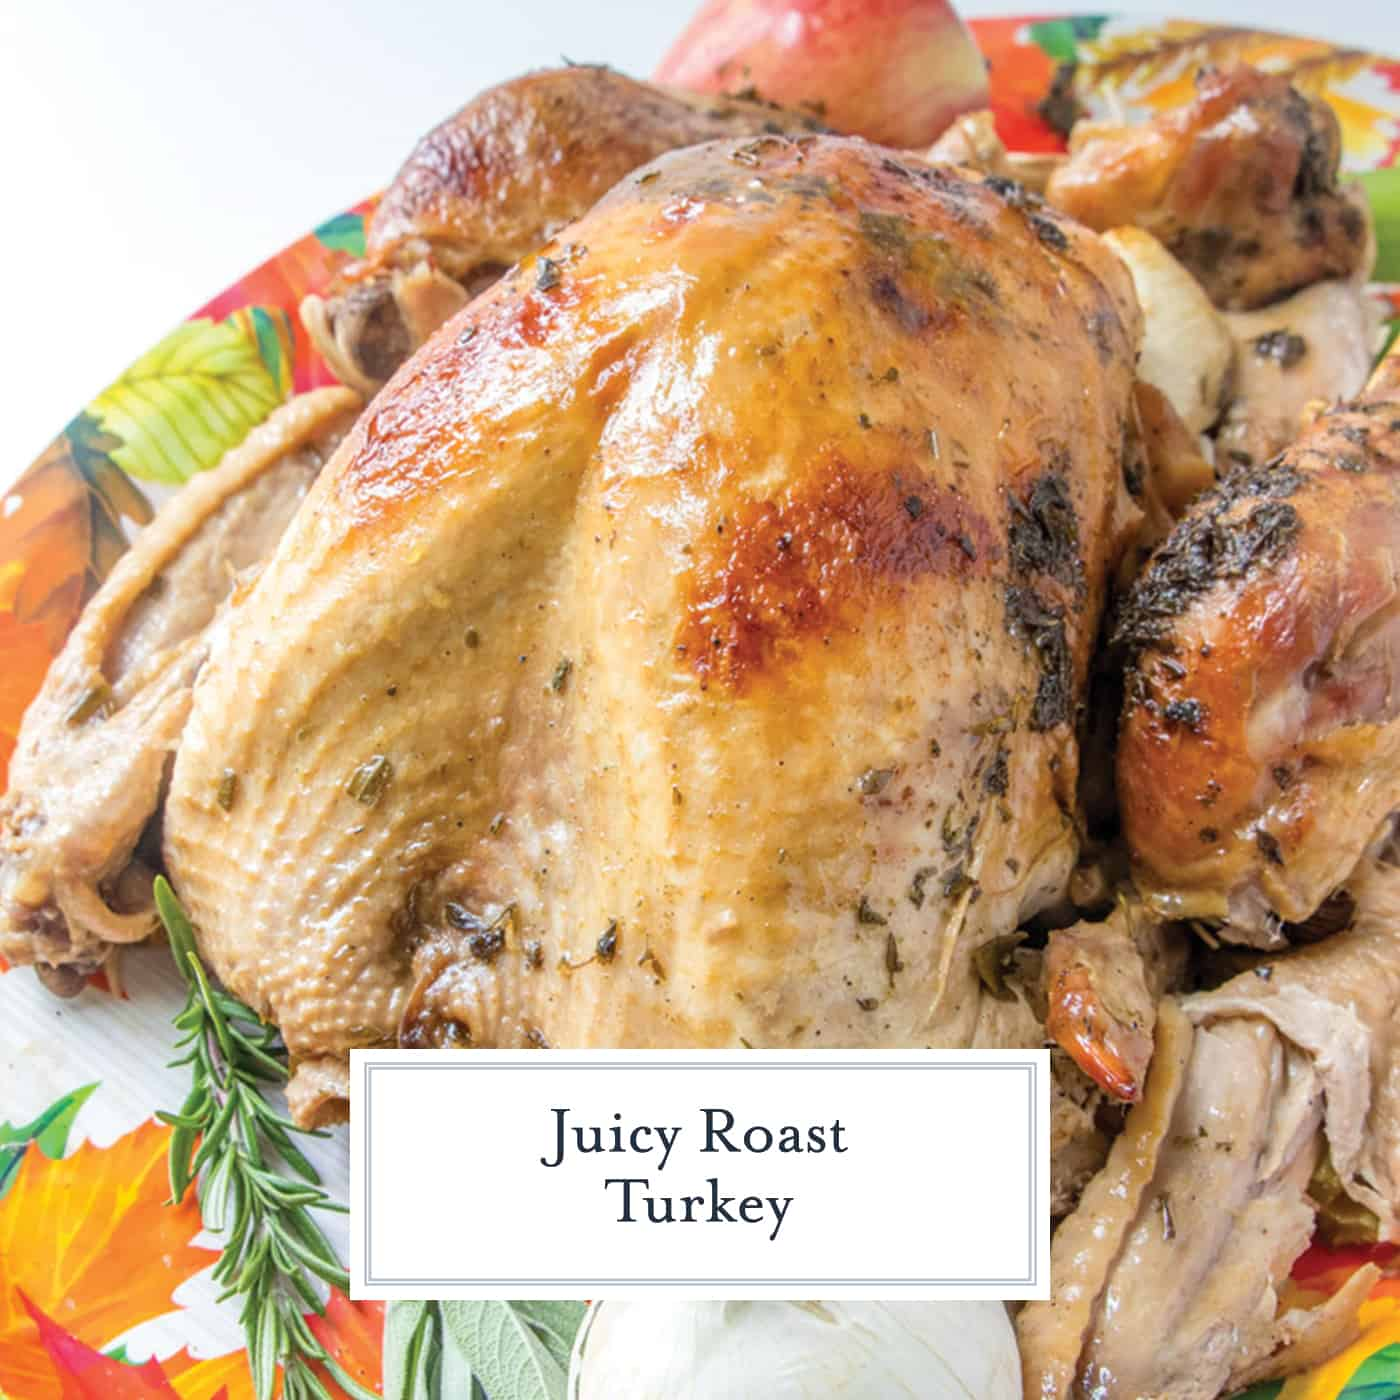 Juicy Roast Turkey is easier than you think with my buttery recipe, a bottle of bubbles and fresh herbs. The best juicy turkey recipe ever! #juicyroastturkey #bestturkeyrecipe #thanksgivingturkey www.savoryexperiments.com